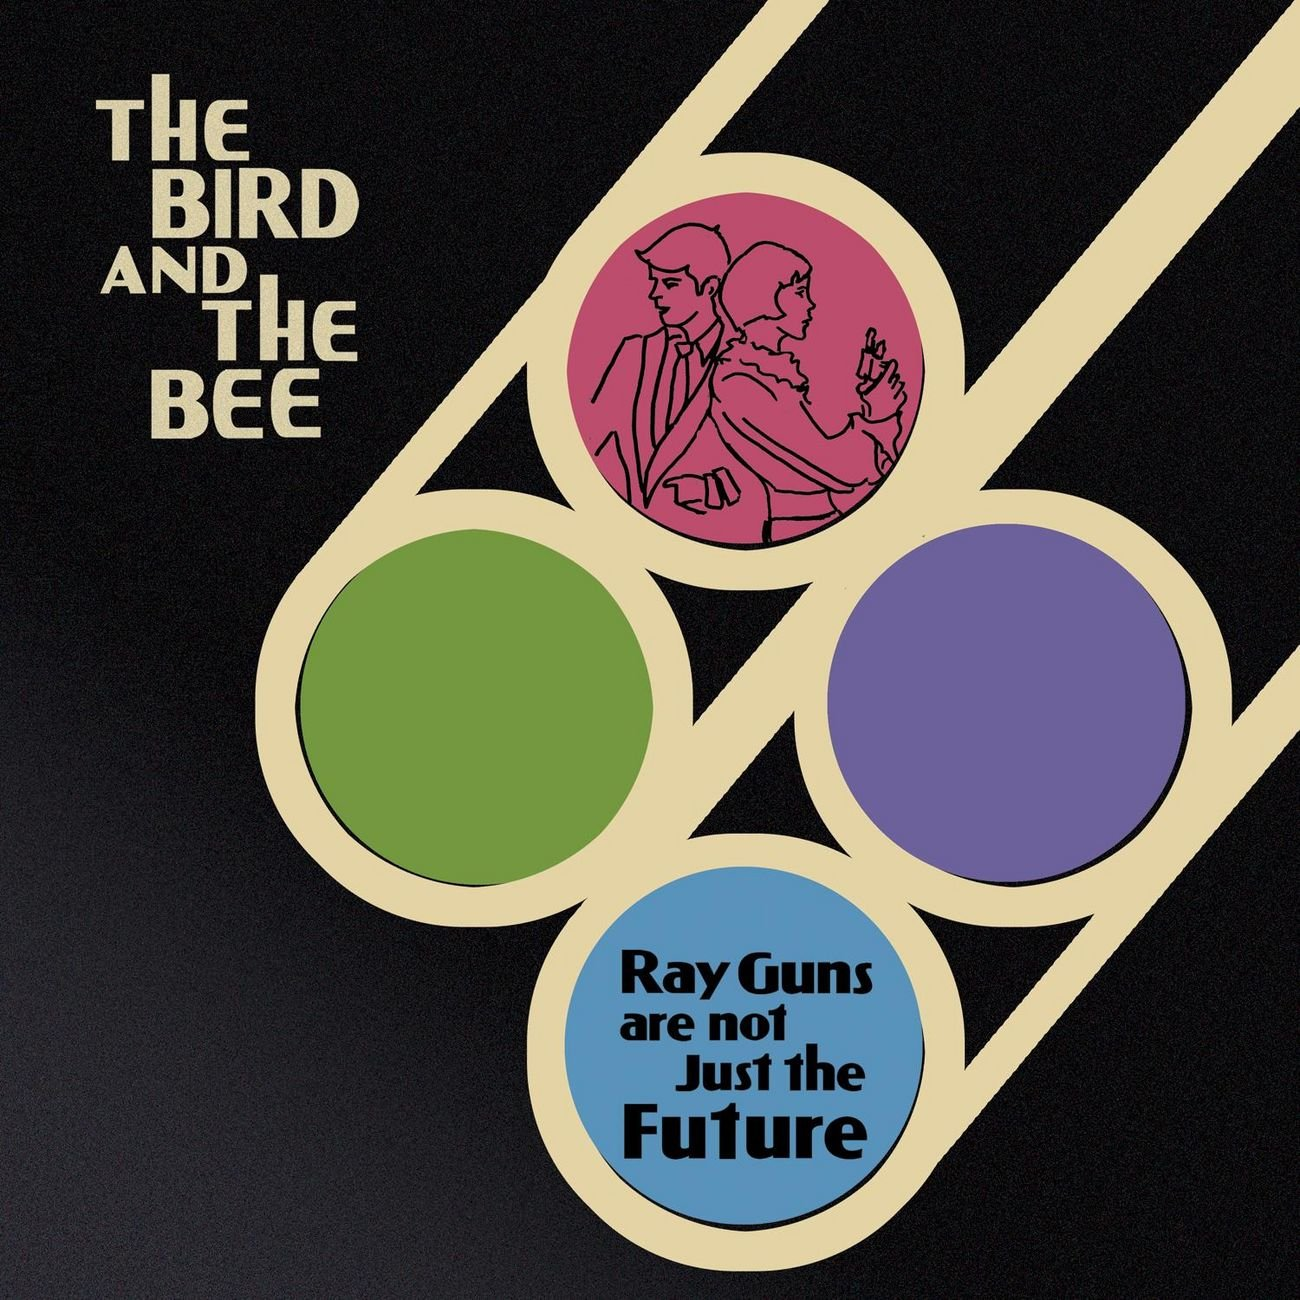 The Bird and the Bee, Ray Guns Are Not Just the Future